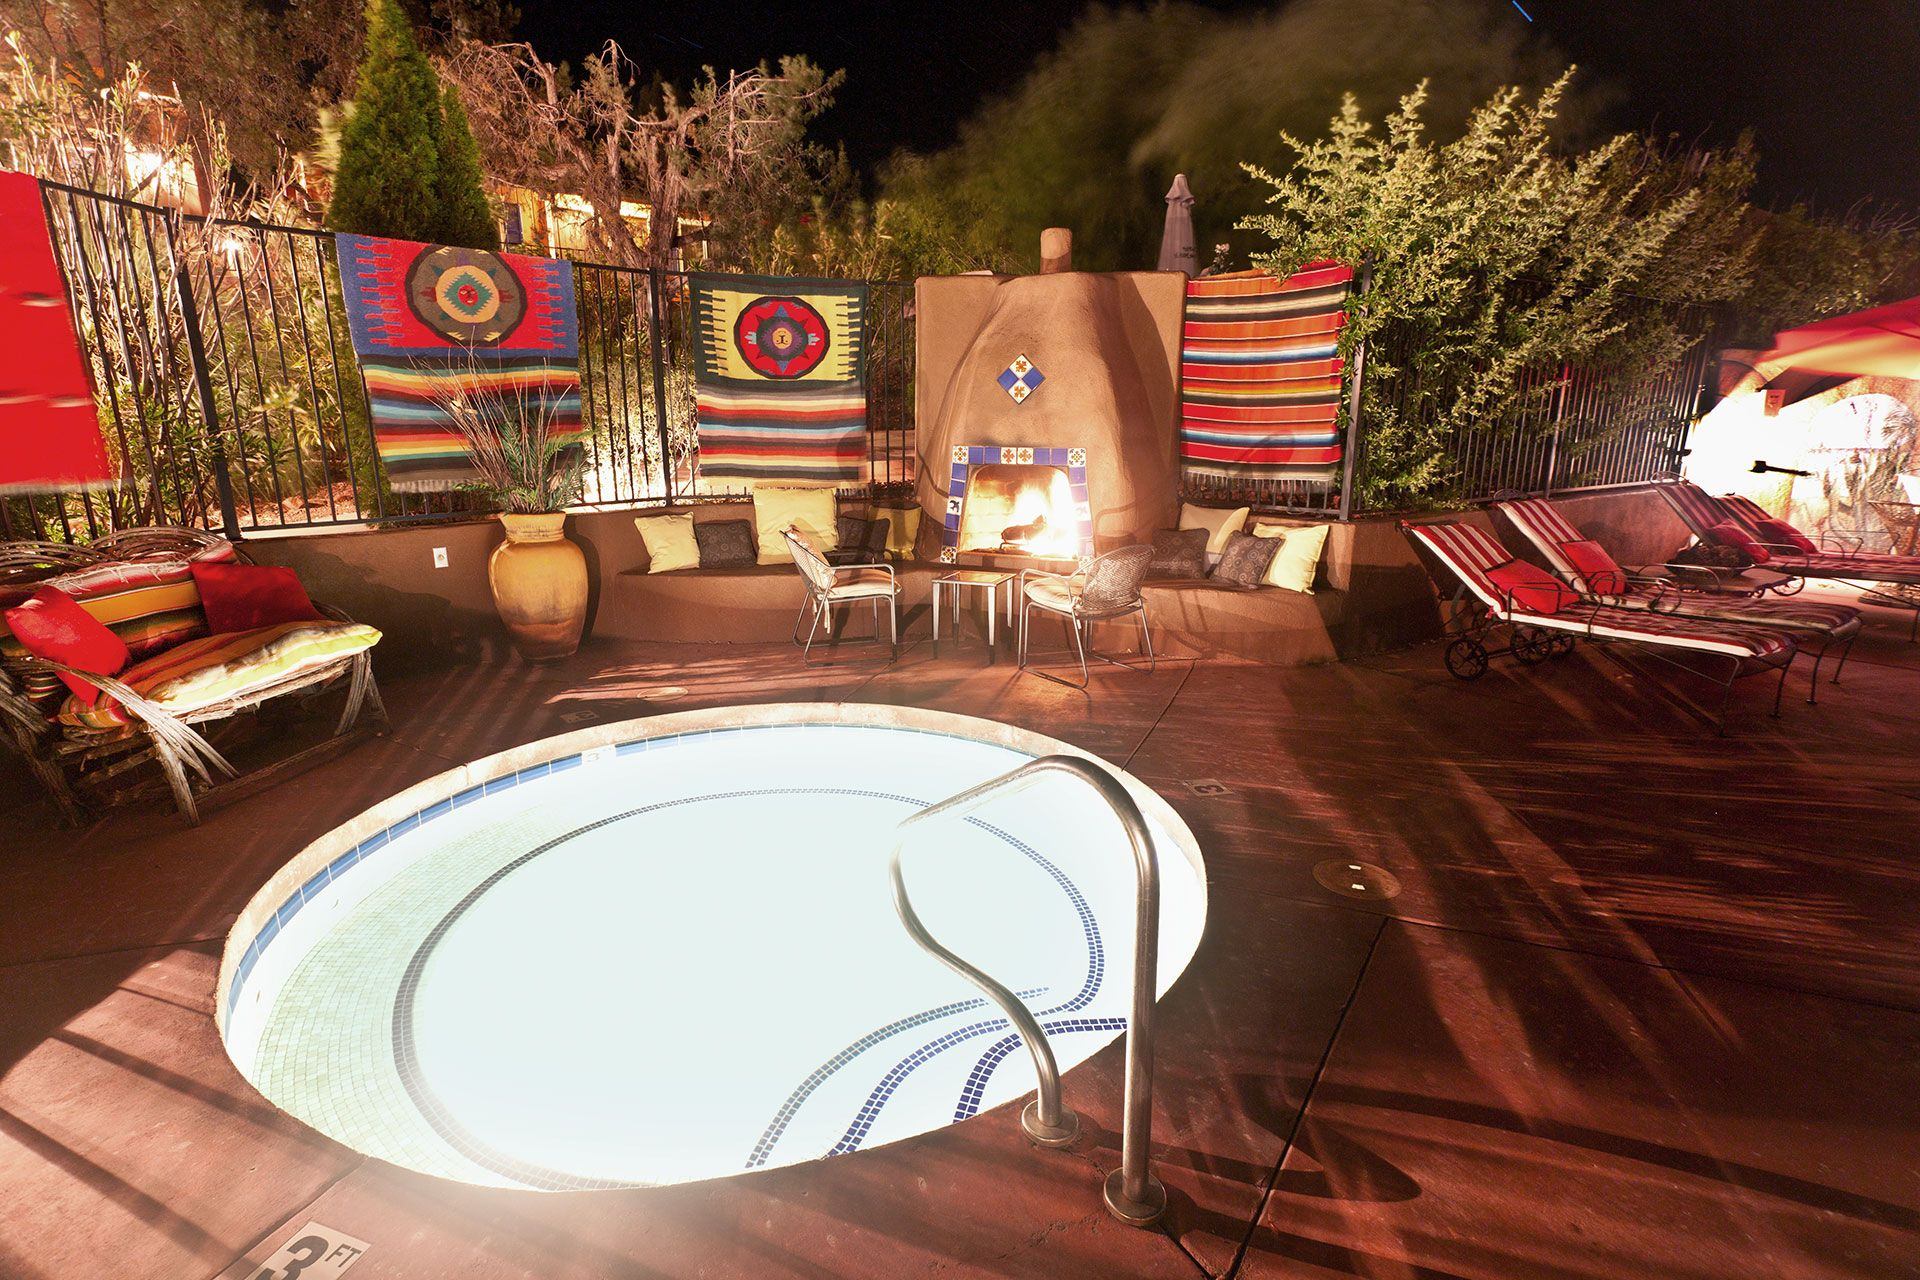 Take an evening dip. Hotel rewards, Bed and breakfast